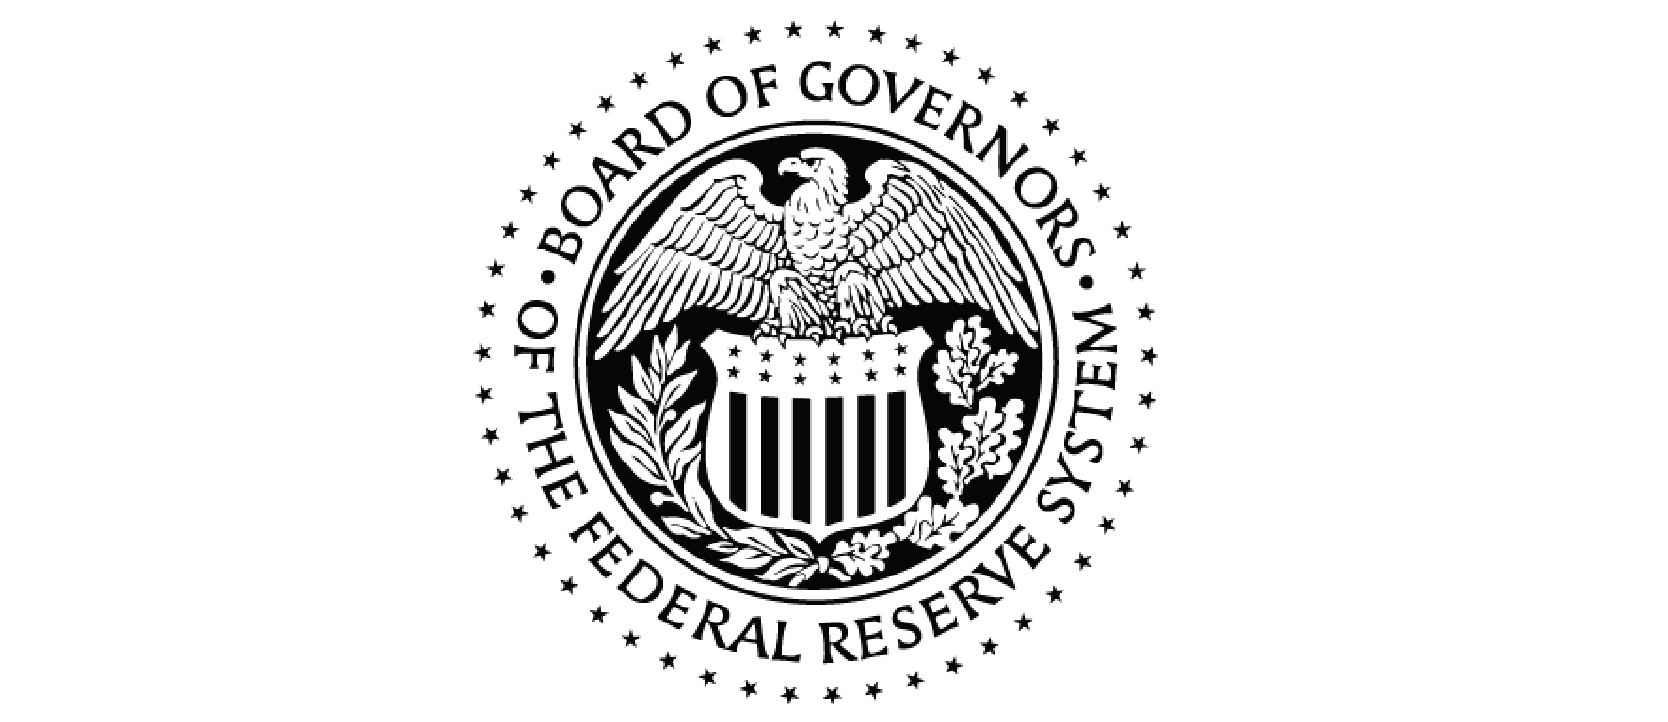 Trusted by the board of governors federal reserve system